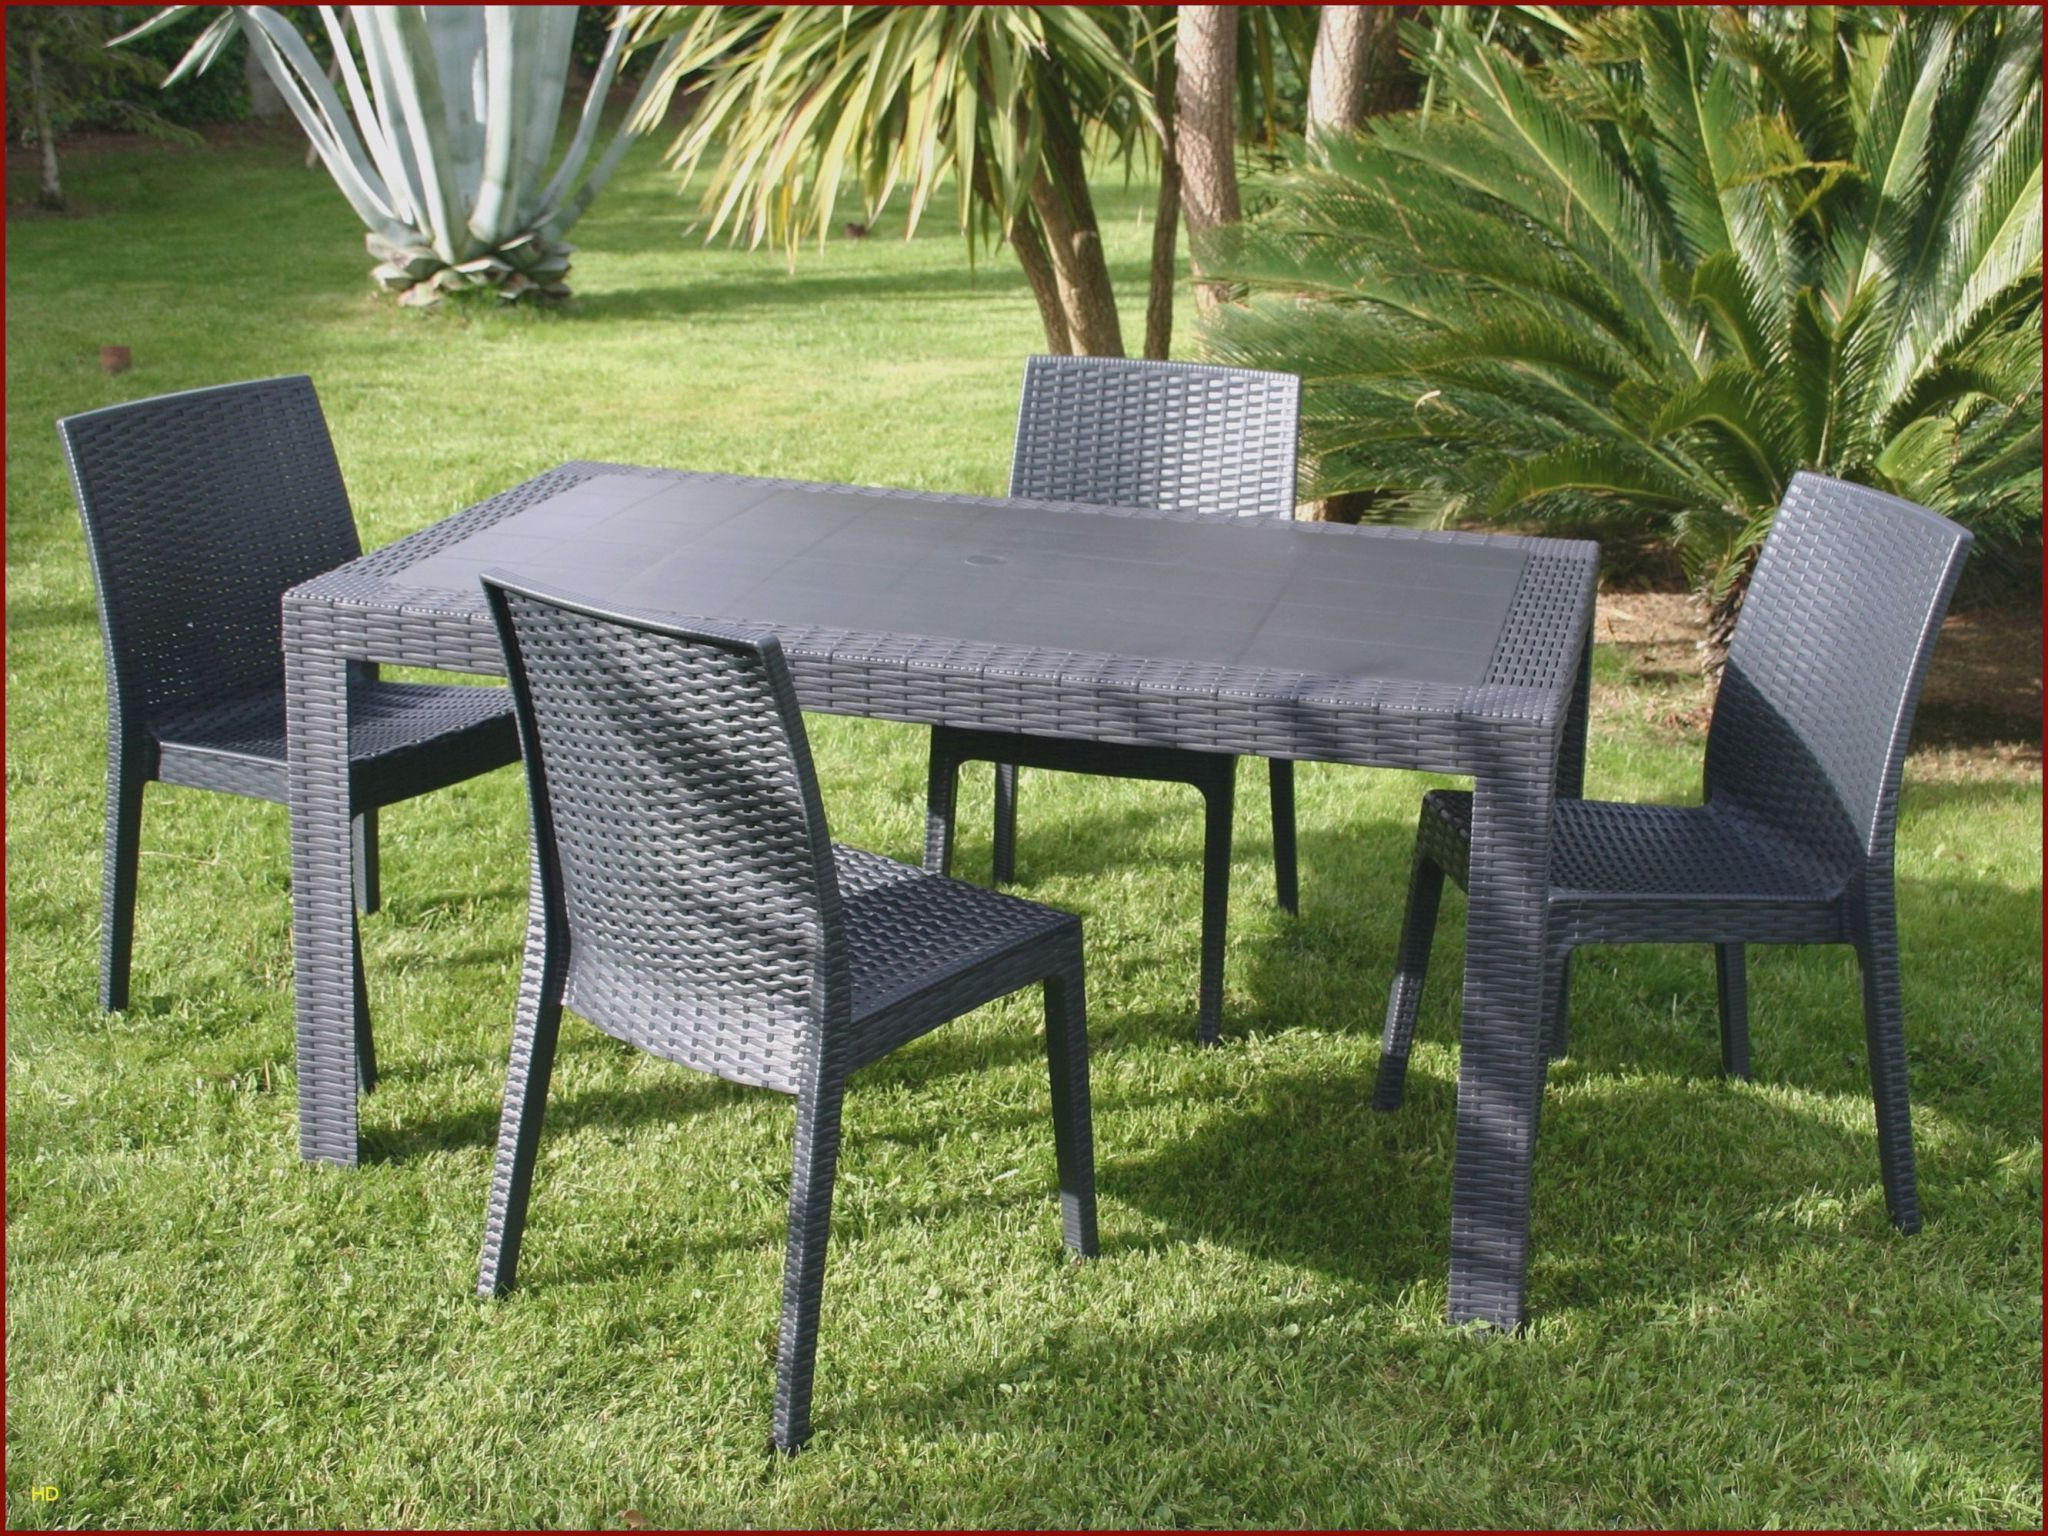 Table Jardin Bistrot Élégant Chaises Luxe Chaise Ice 0d Table Jardin Resine Lovely